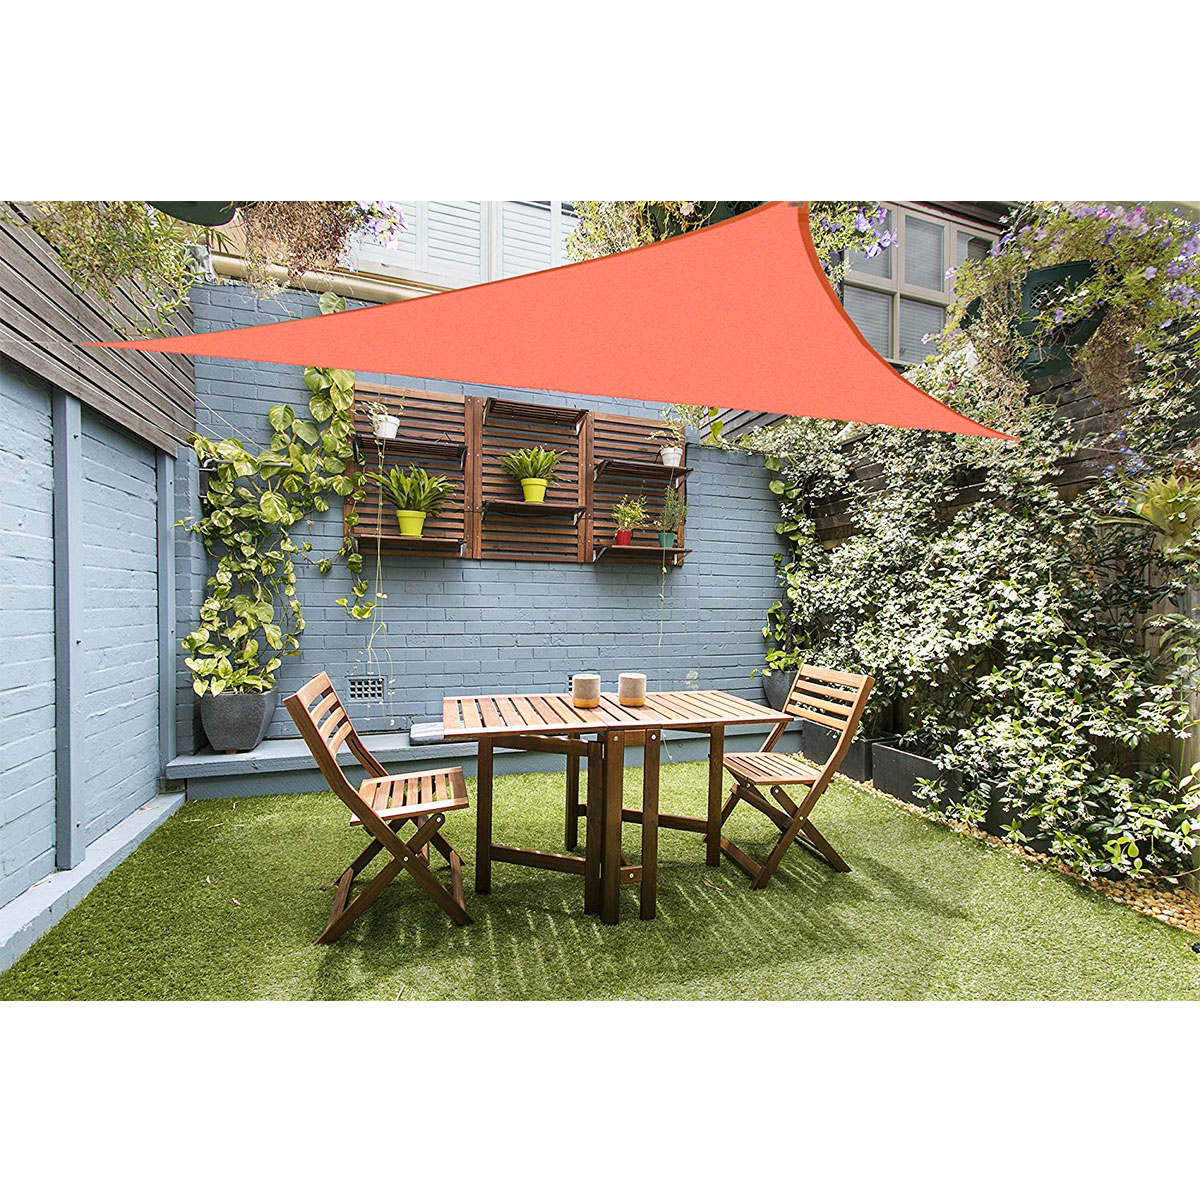 Right triangle 3x4x5m Waterproof Sunproof Mesh Net Sun Shade Sail UV Protection Sun Shelter Awning Sunshade Nets Yard Garden Стол